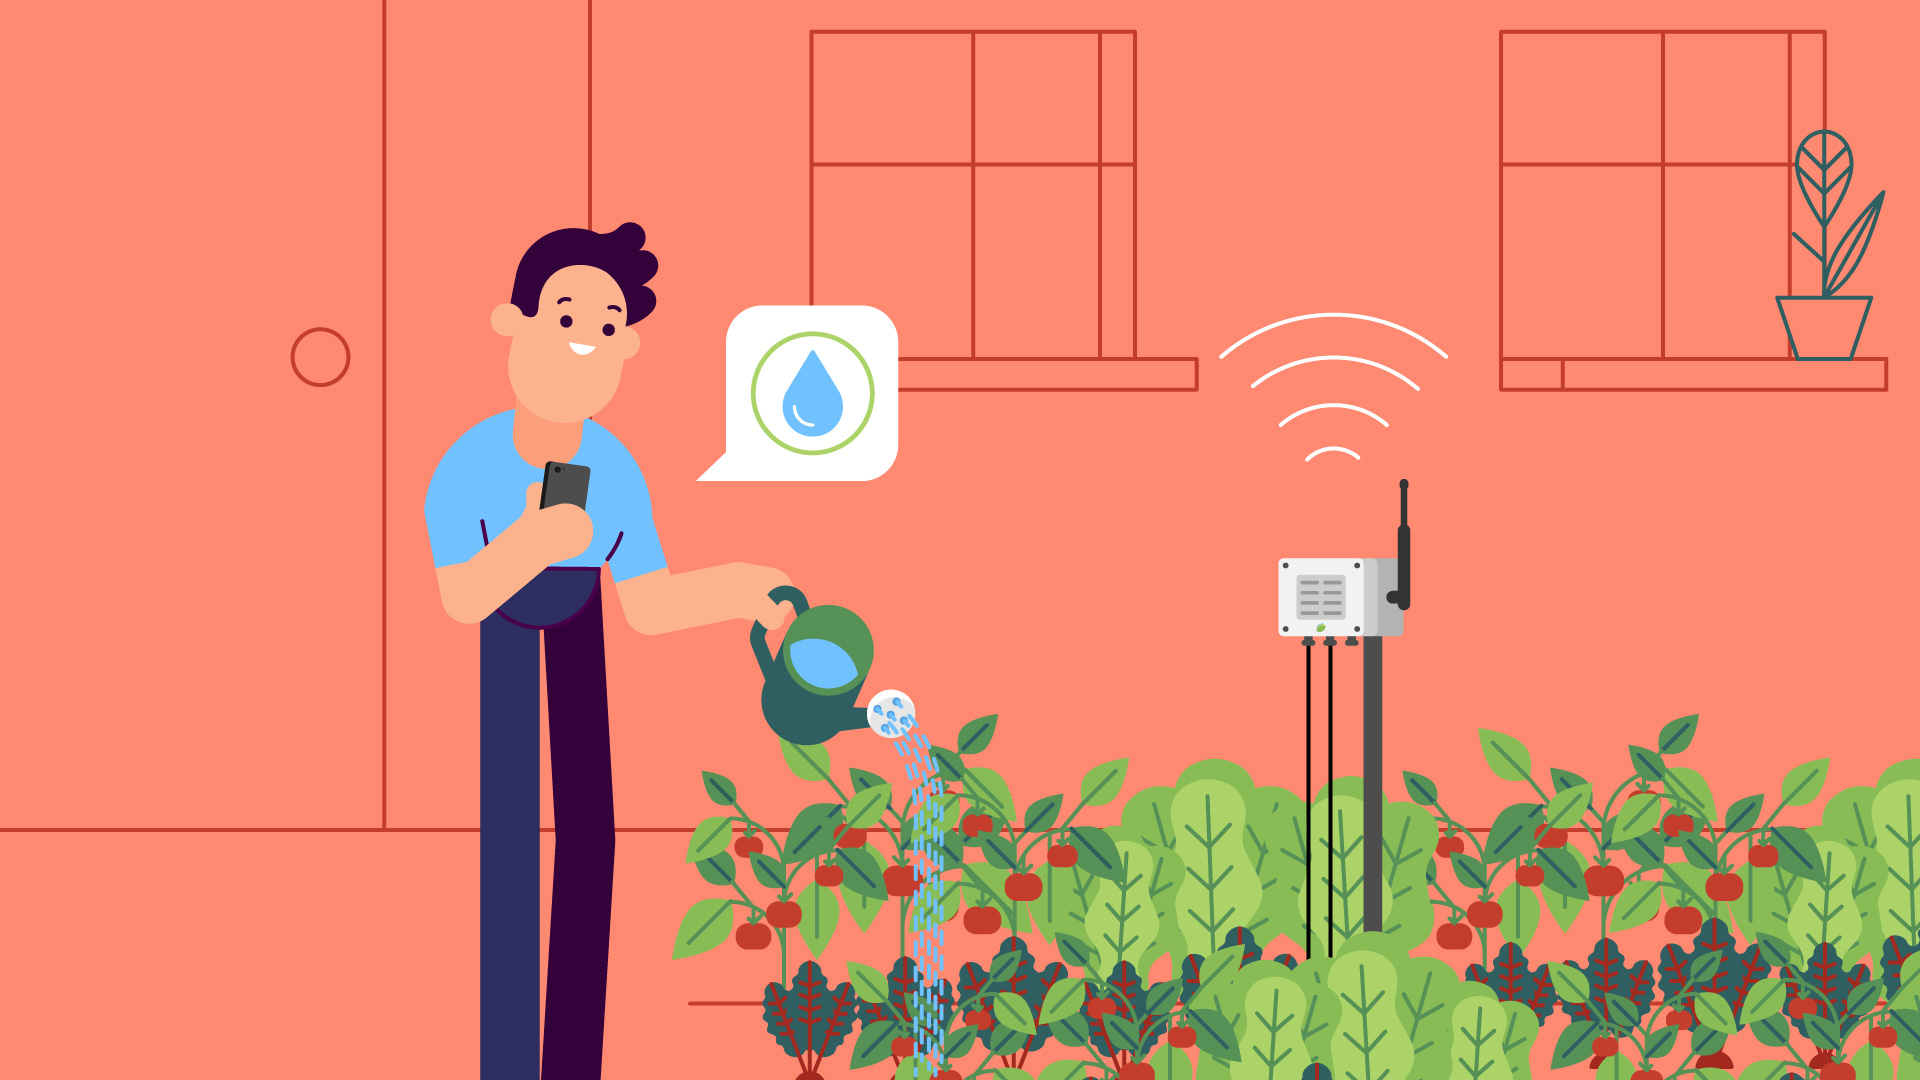 Illustration of a person watering some plants in his backyard